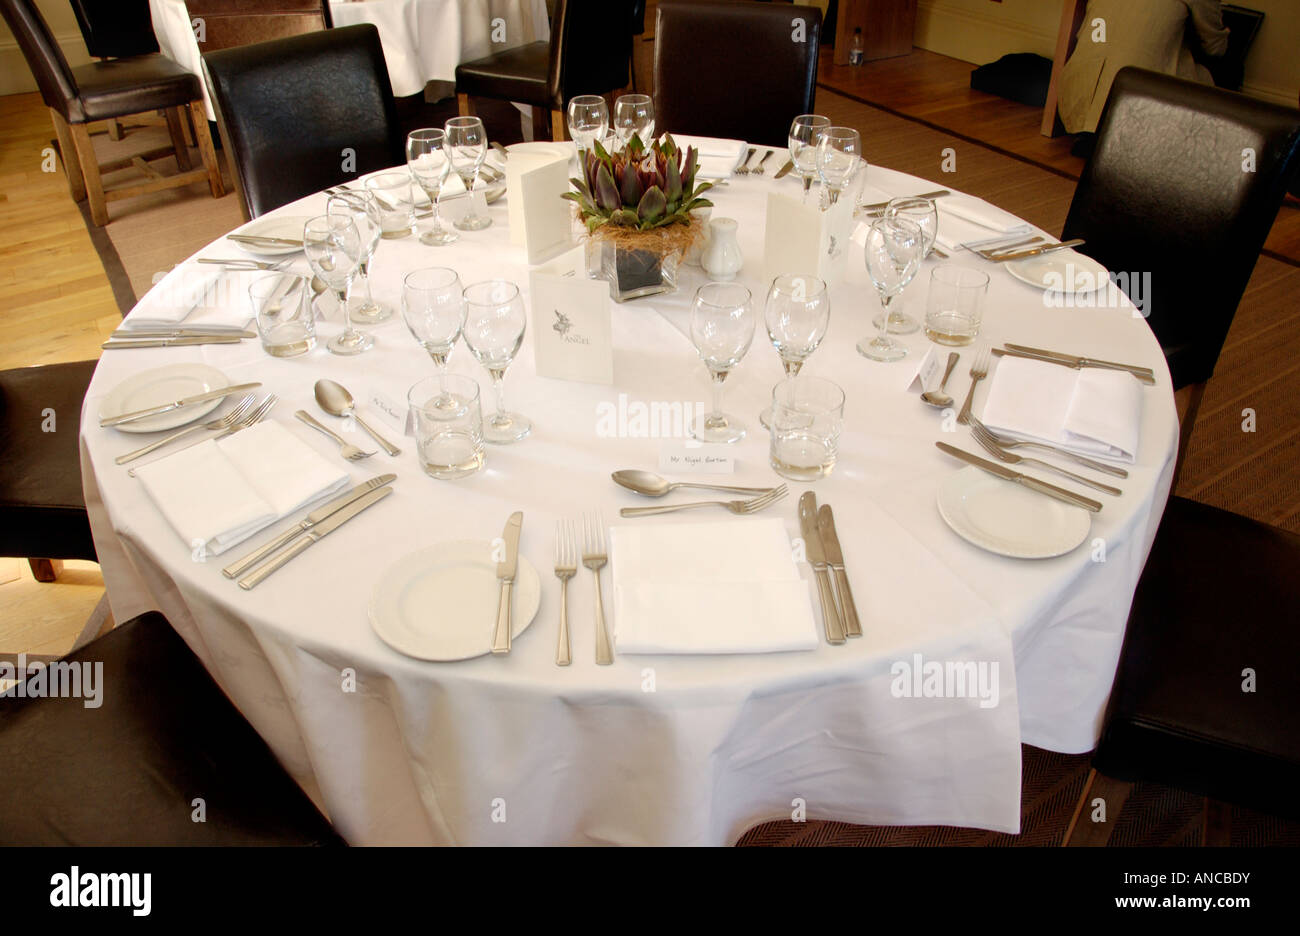 Formal table setting for lunch in Angel Hotel during Abergavenny Food Festival Monmouthshire South Wales UK & Formal Table Setting Stock Photos u0026 Formal Table Setting Stock ...